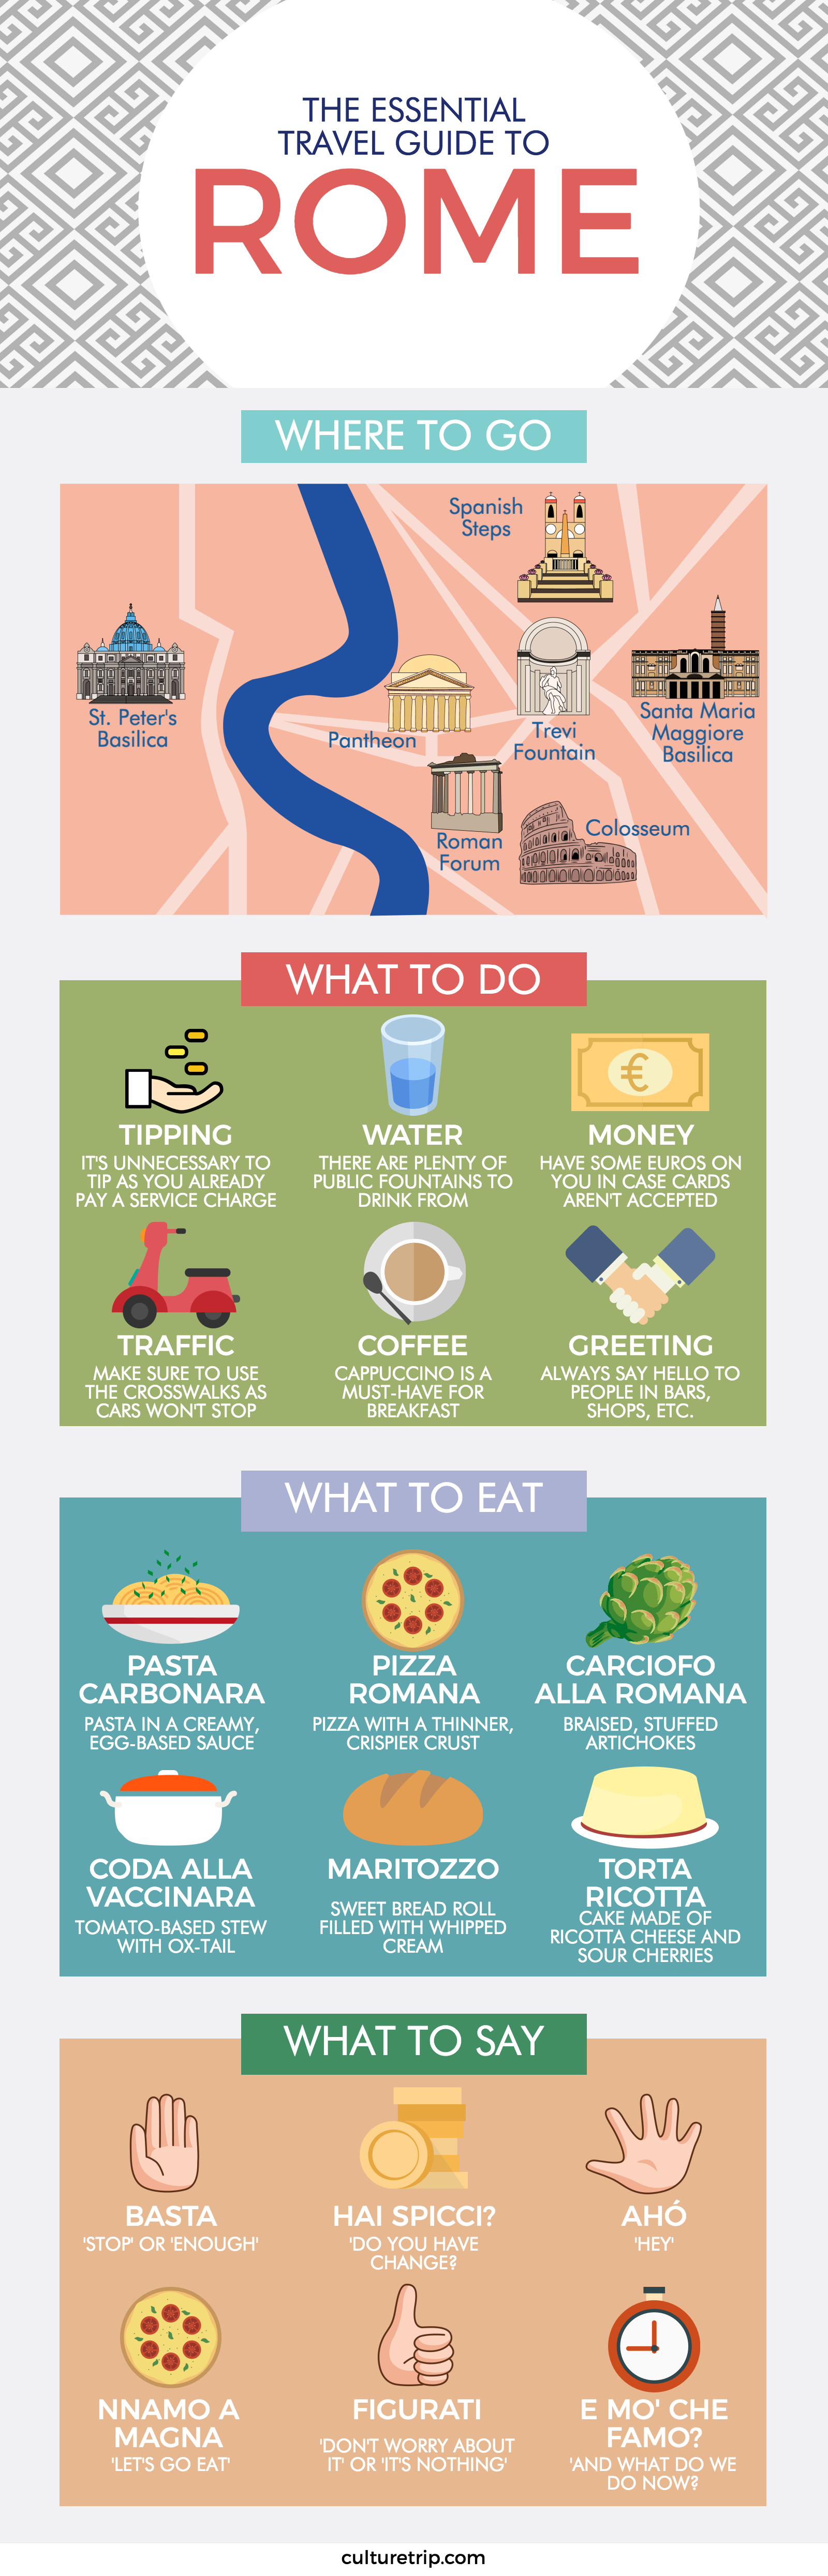 The Essential Travel Guide To Rome Infographic Rome - 10 safety tips for travelers to rome